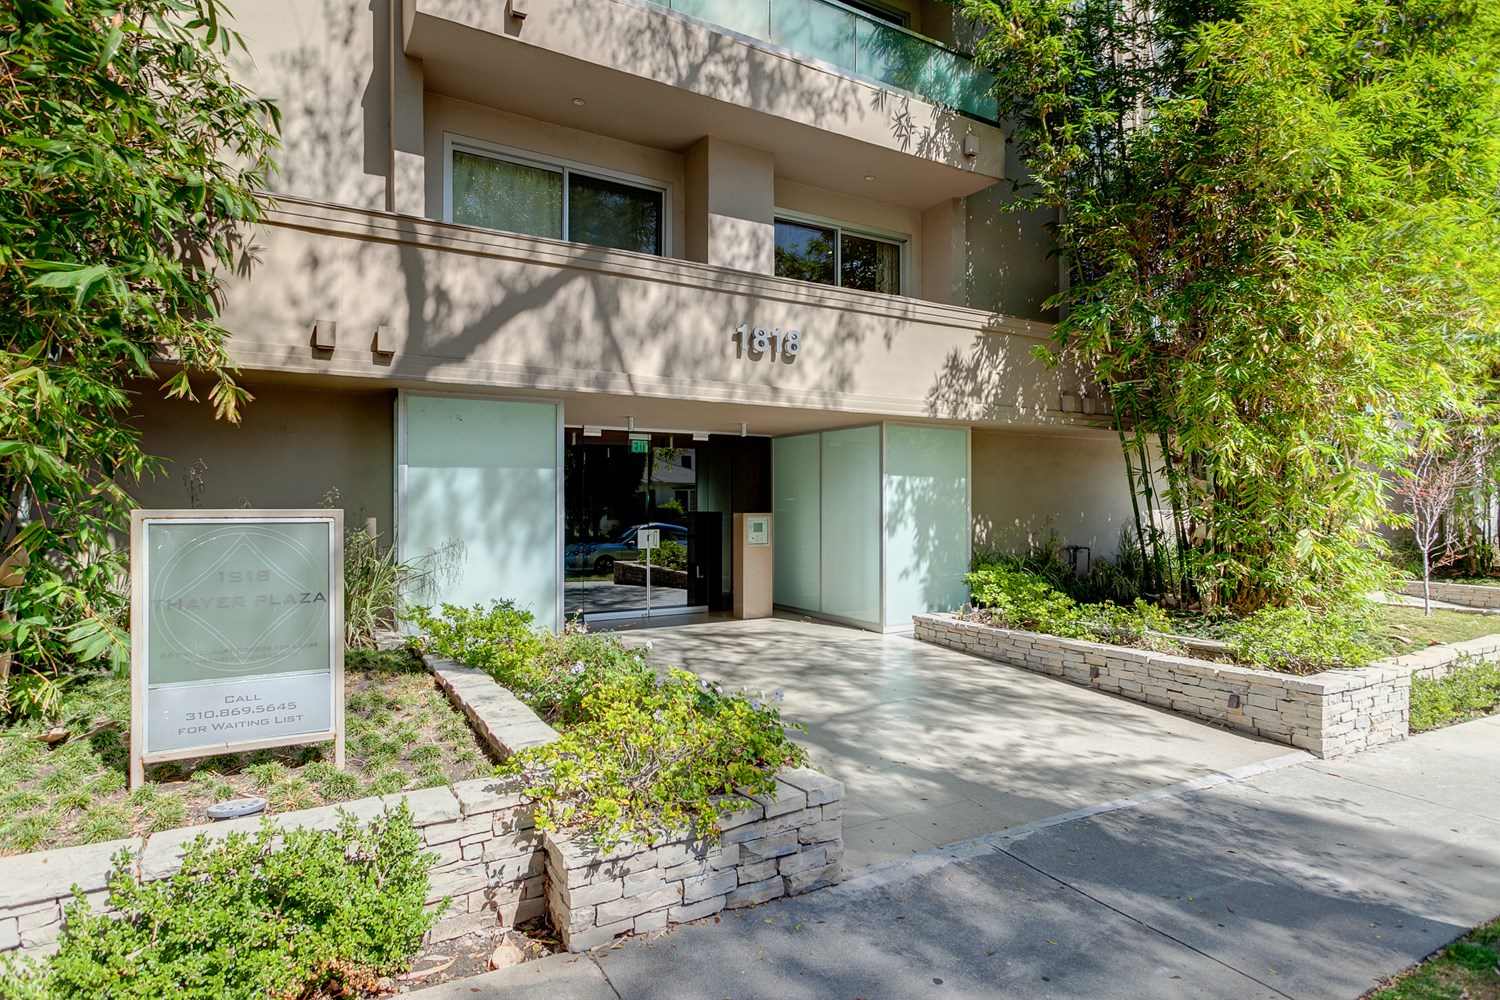 Chic FURNISHED, Pet-Friendly 2BD West LA Condo Available for Short-Term Stays!